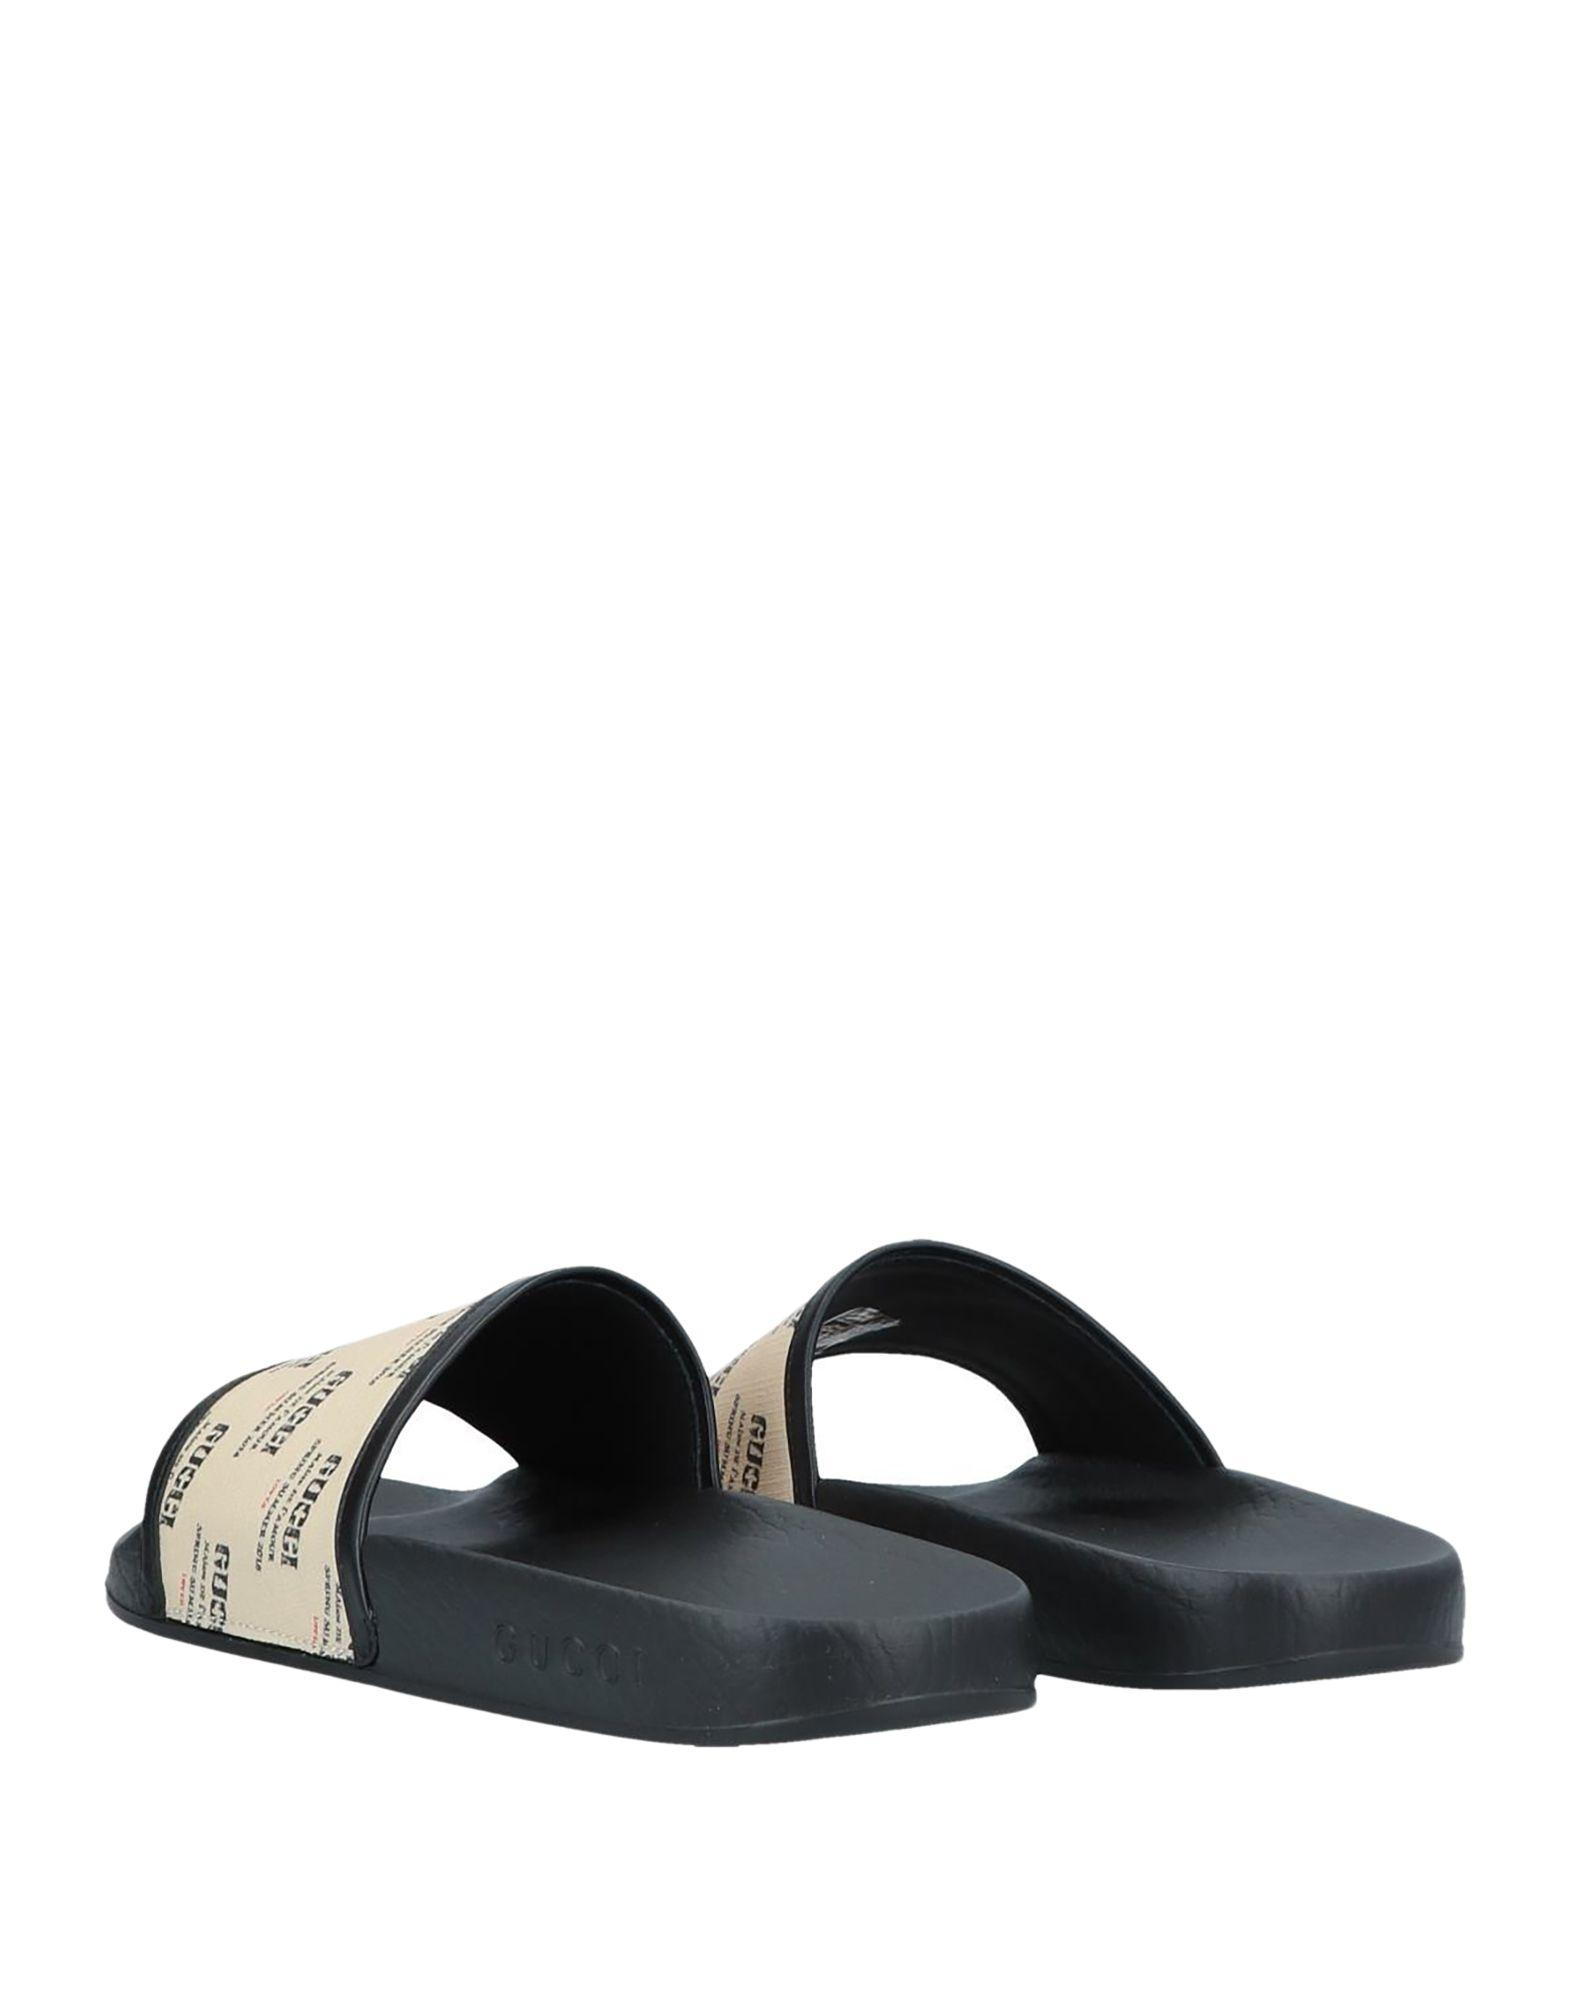 4eed1079cdbab8 Lyst - Gucci Logo Print Rubber Slide Sandals in Natural - Save 35%